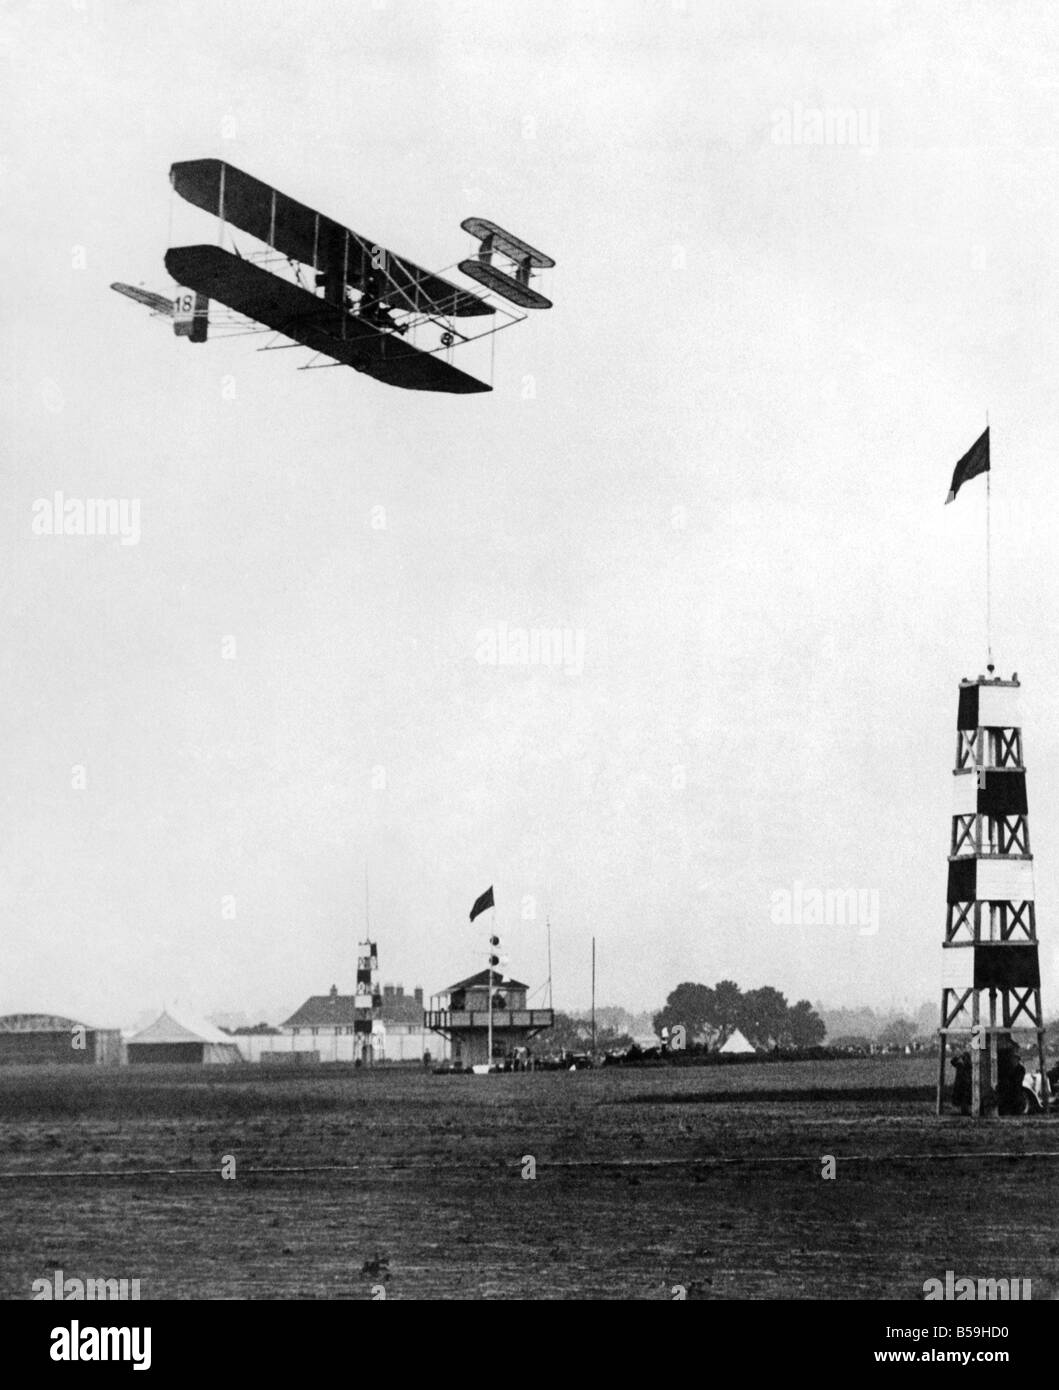 The Hon. Charles Rolls, holder of Royal Aero Club Certificate No.2, seen here flying his French built Wright bi - Stock Image